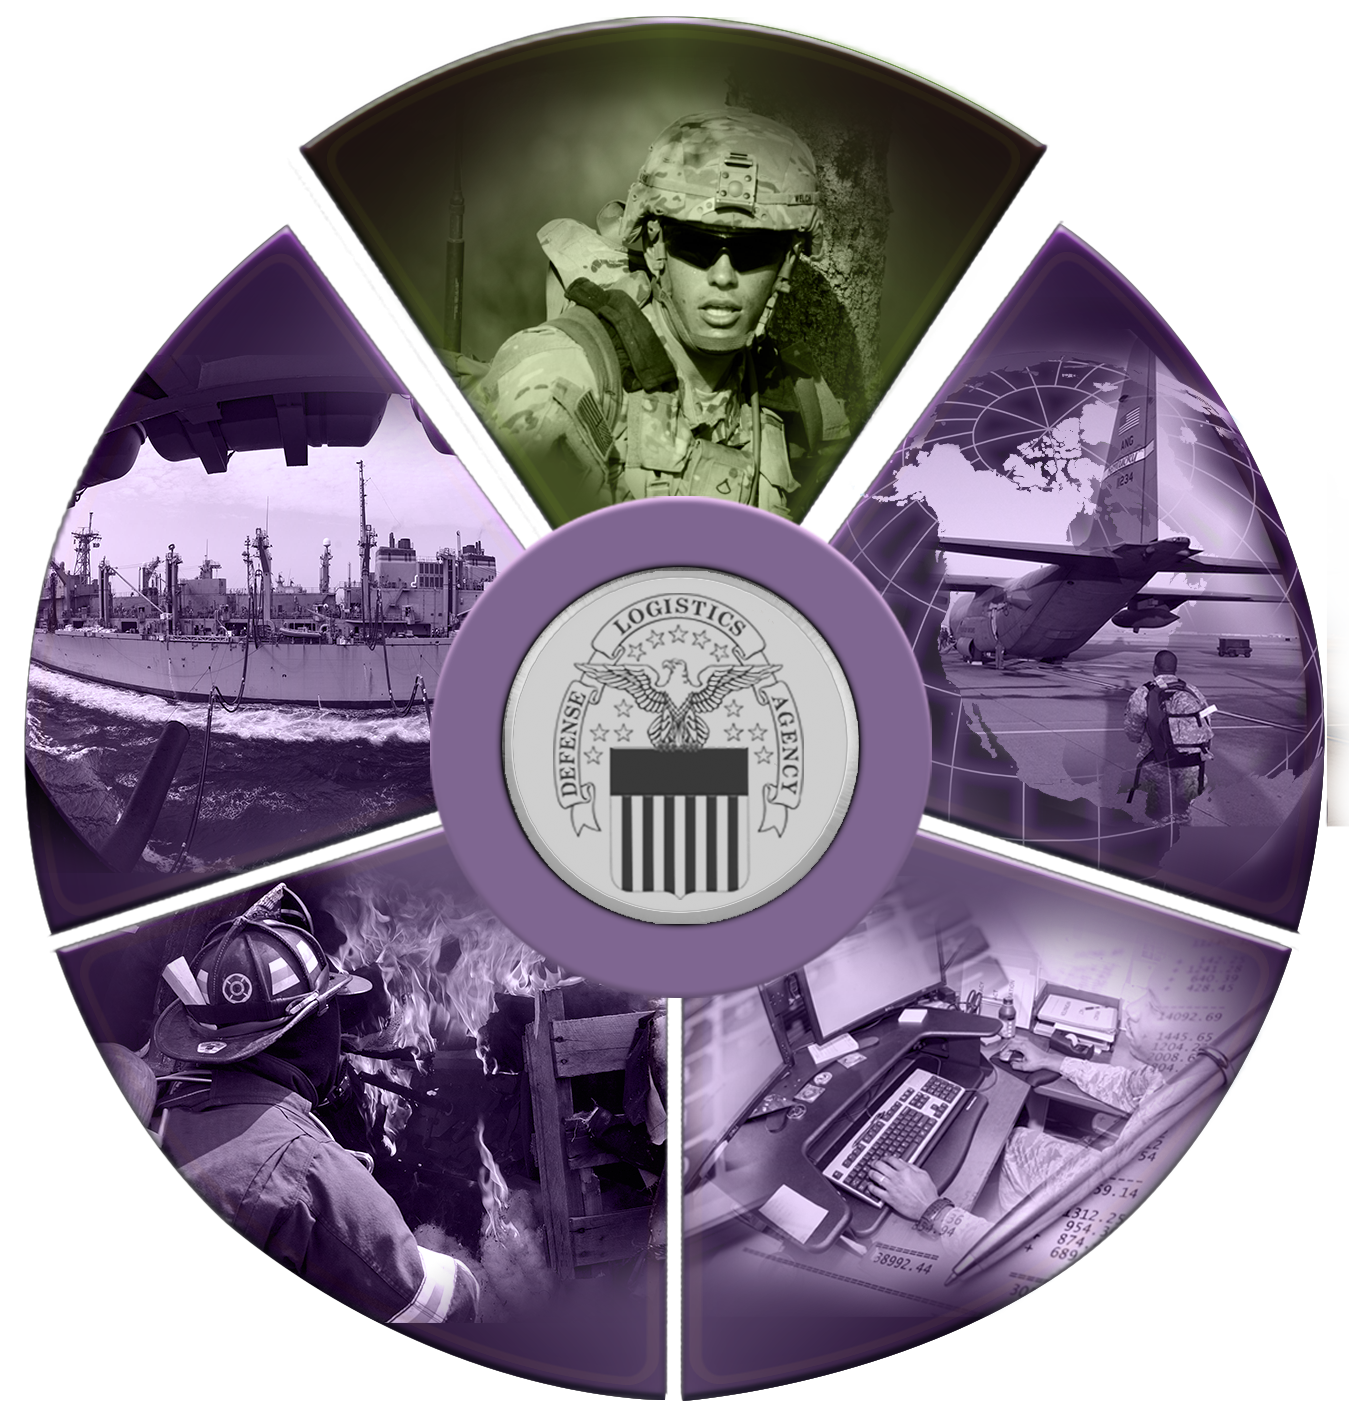 The Strategic Plan emblem with five slices of a wheel representing military missions